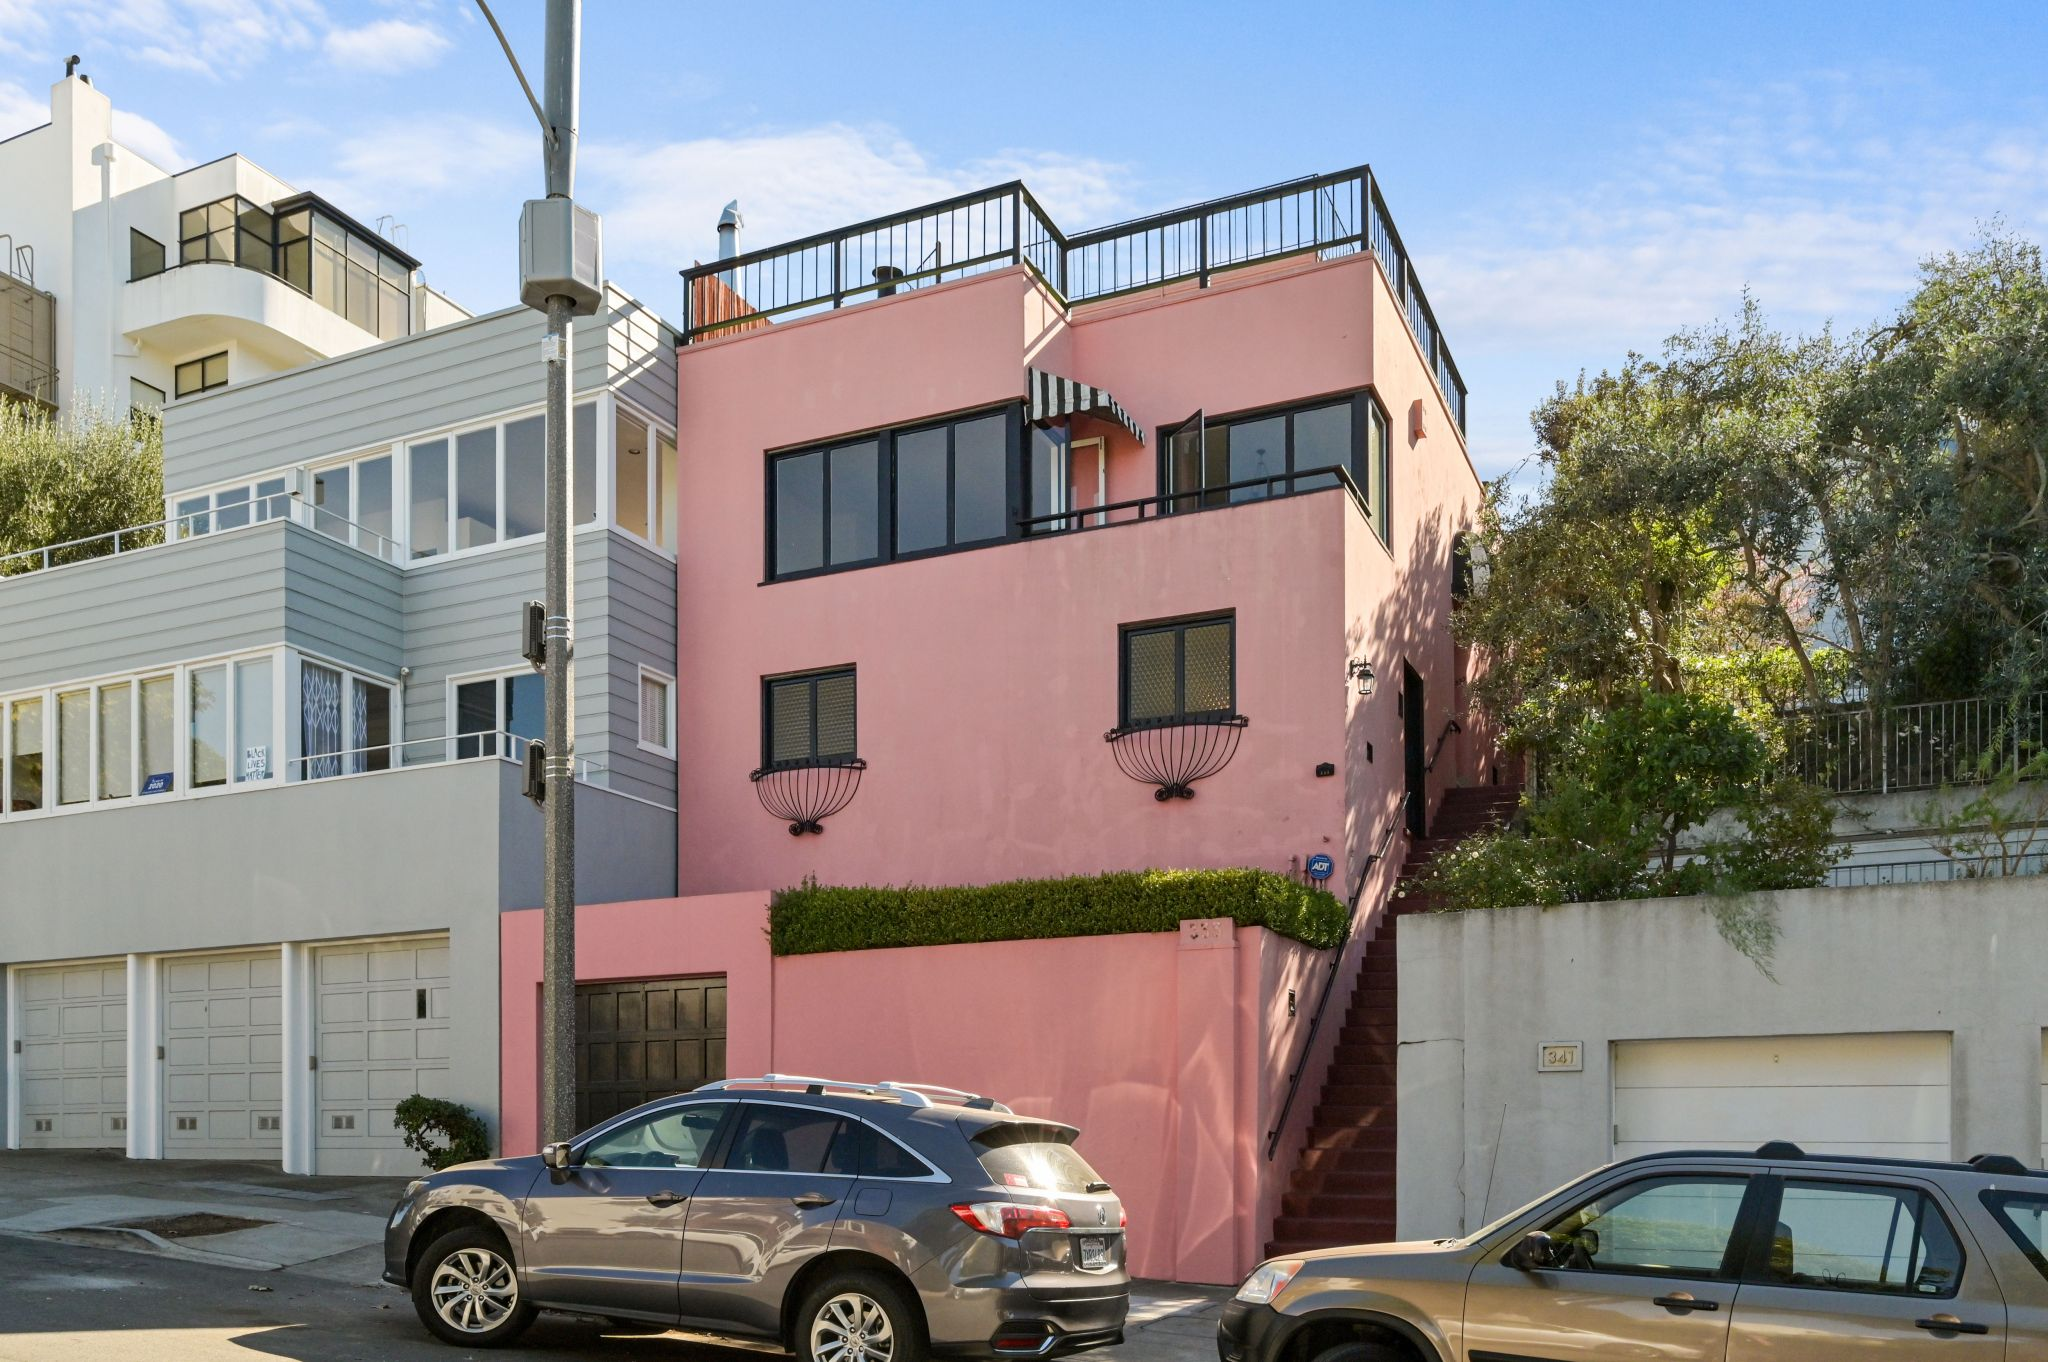 Time warp bachelor pad, on market for first time in 60 years, may have SF's best view